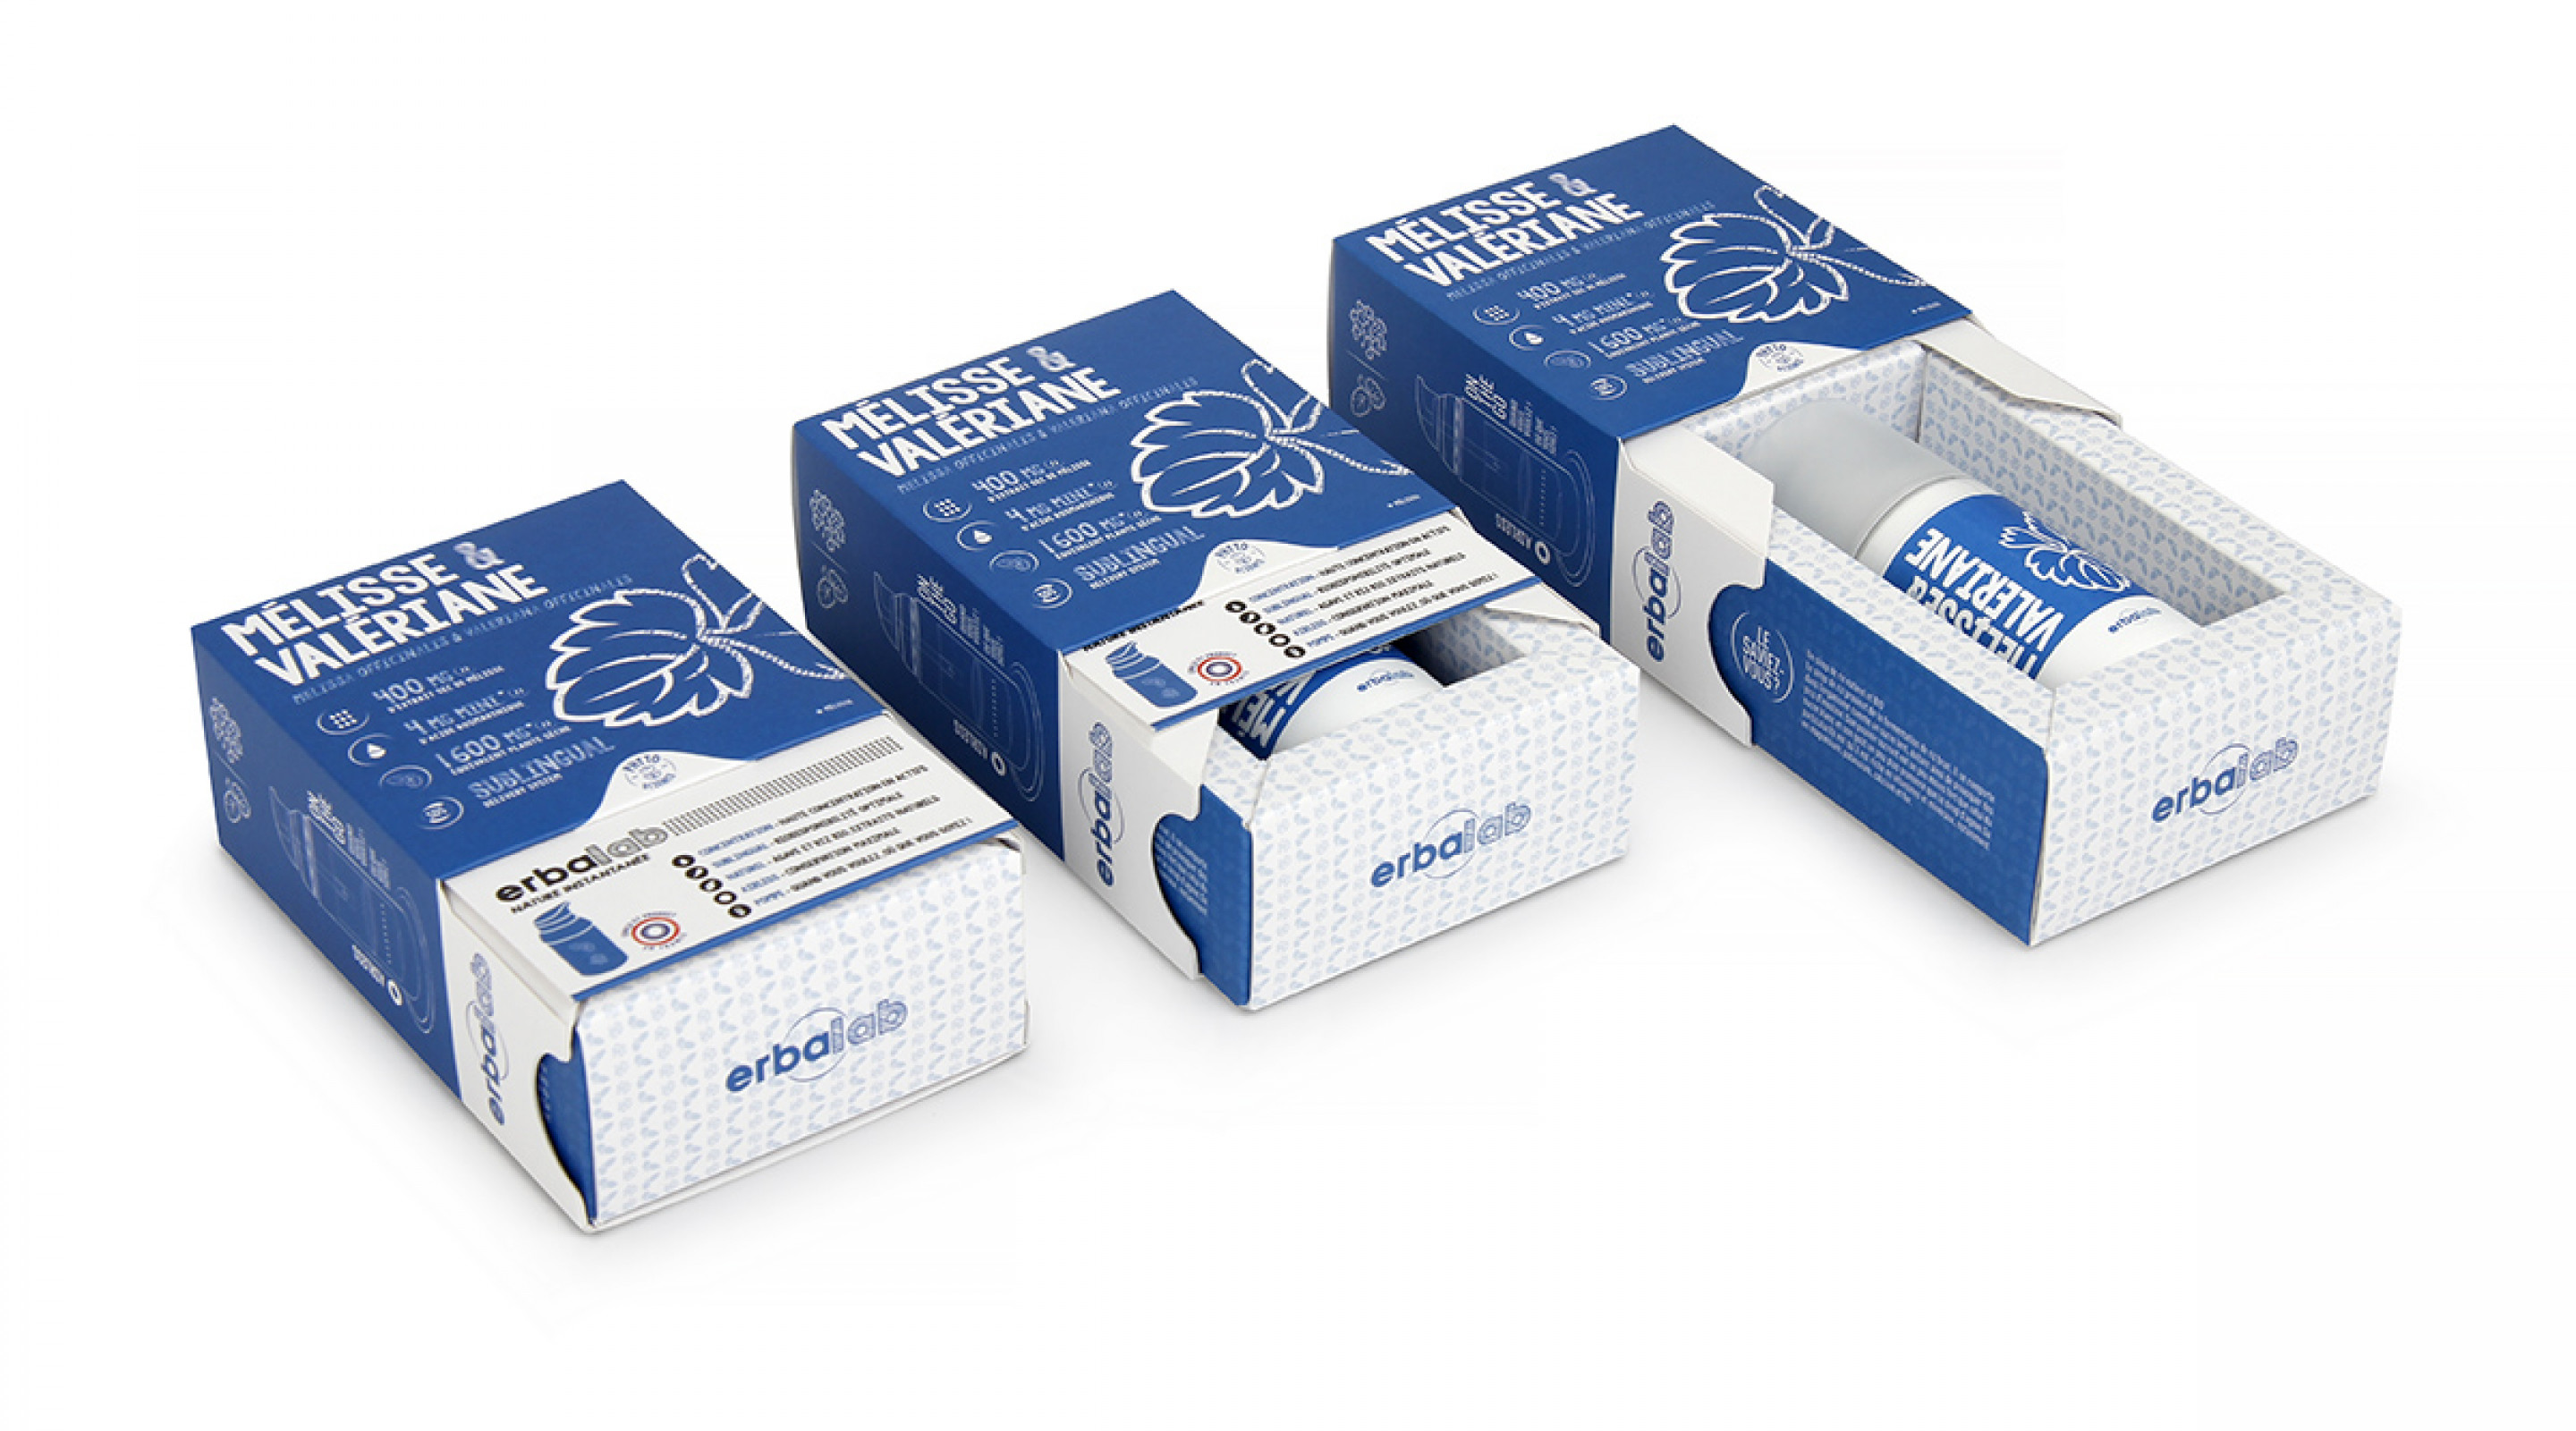 Erbalab Phyto Supplement Pump Sliding Packaging